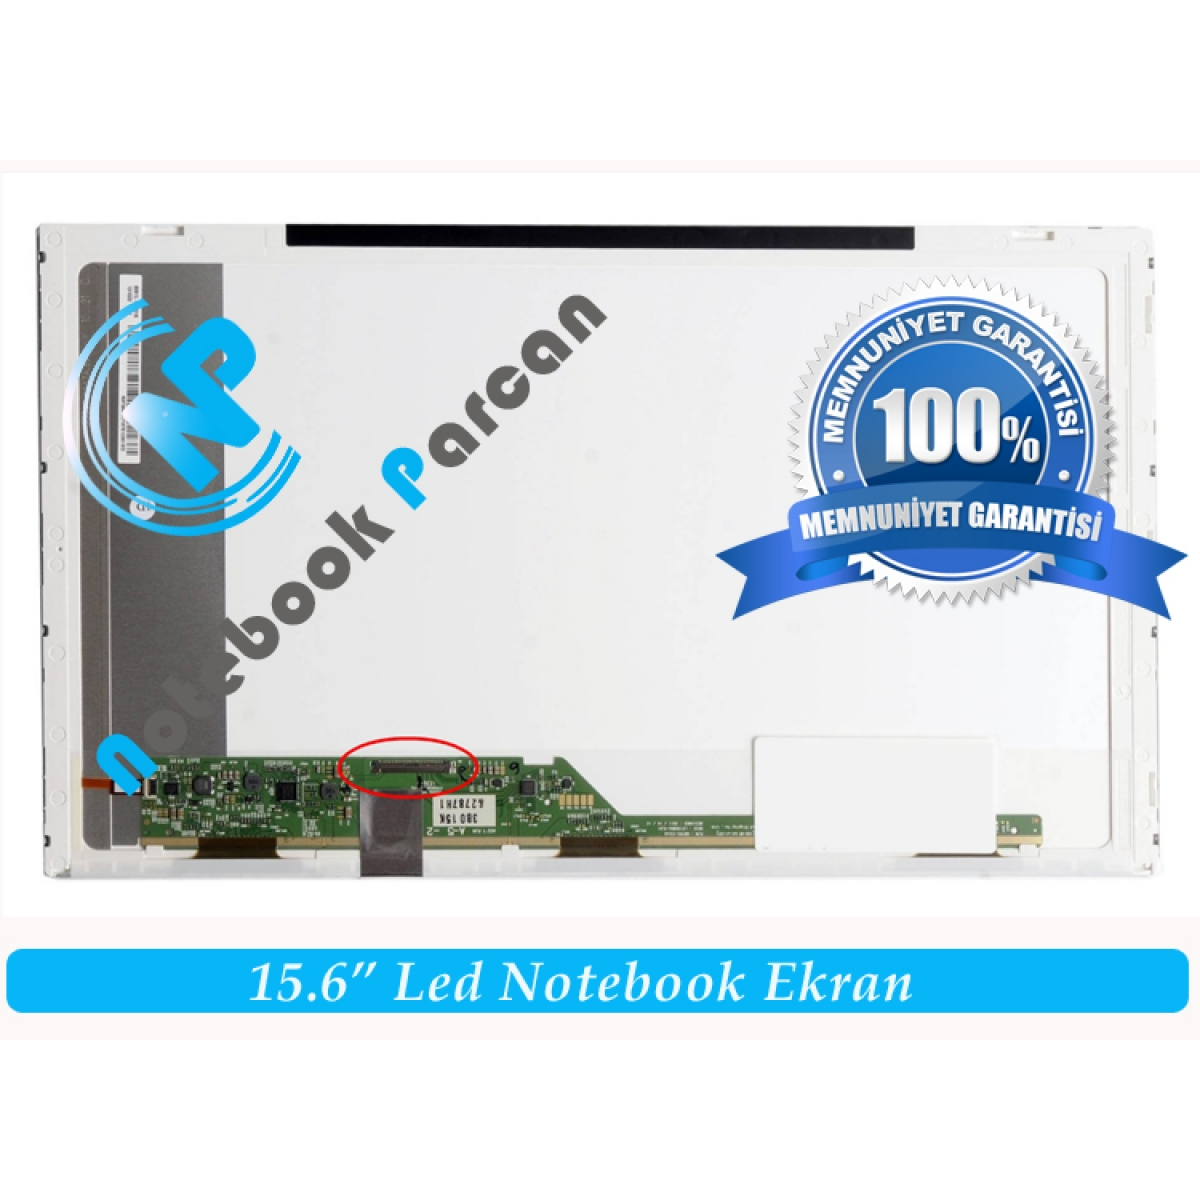 Toshiba Satellite C655-S5052 Ekran 15.6 Led Pan